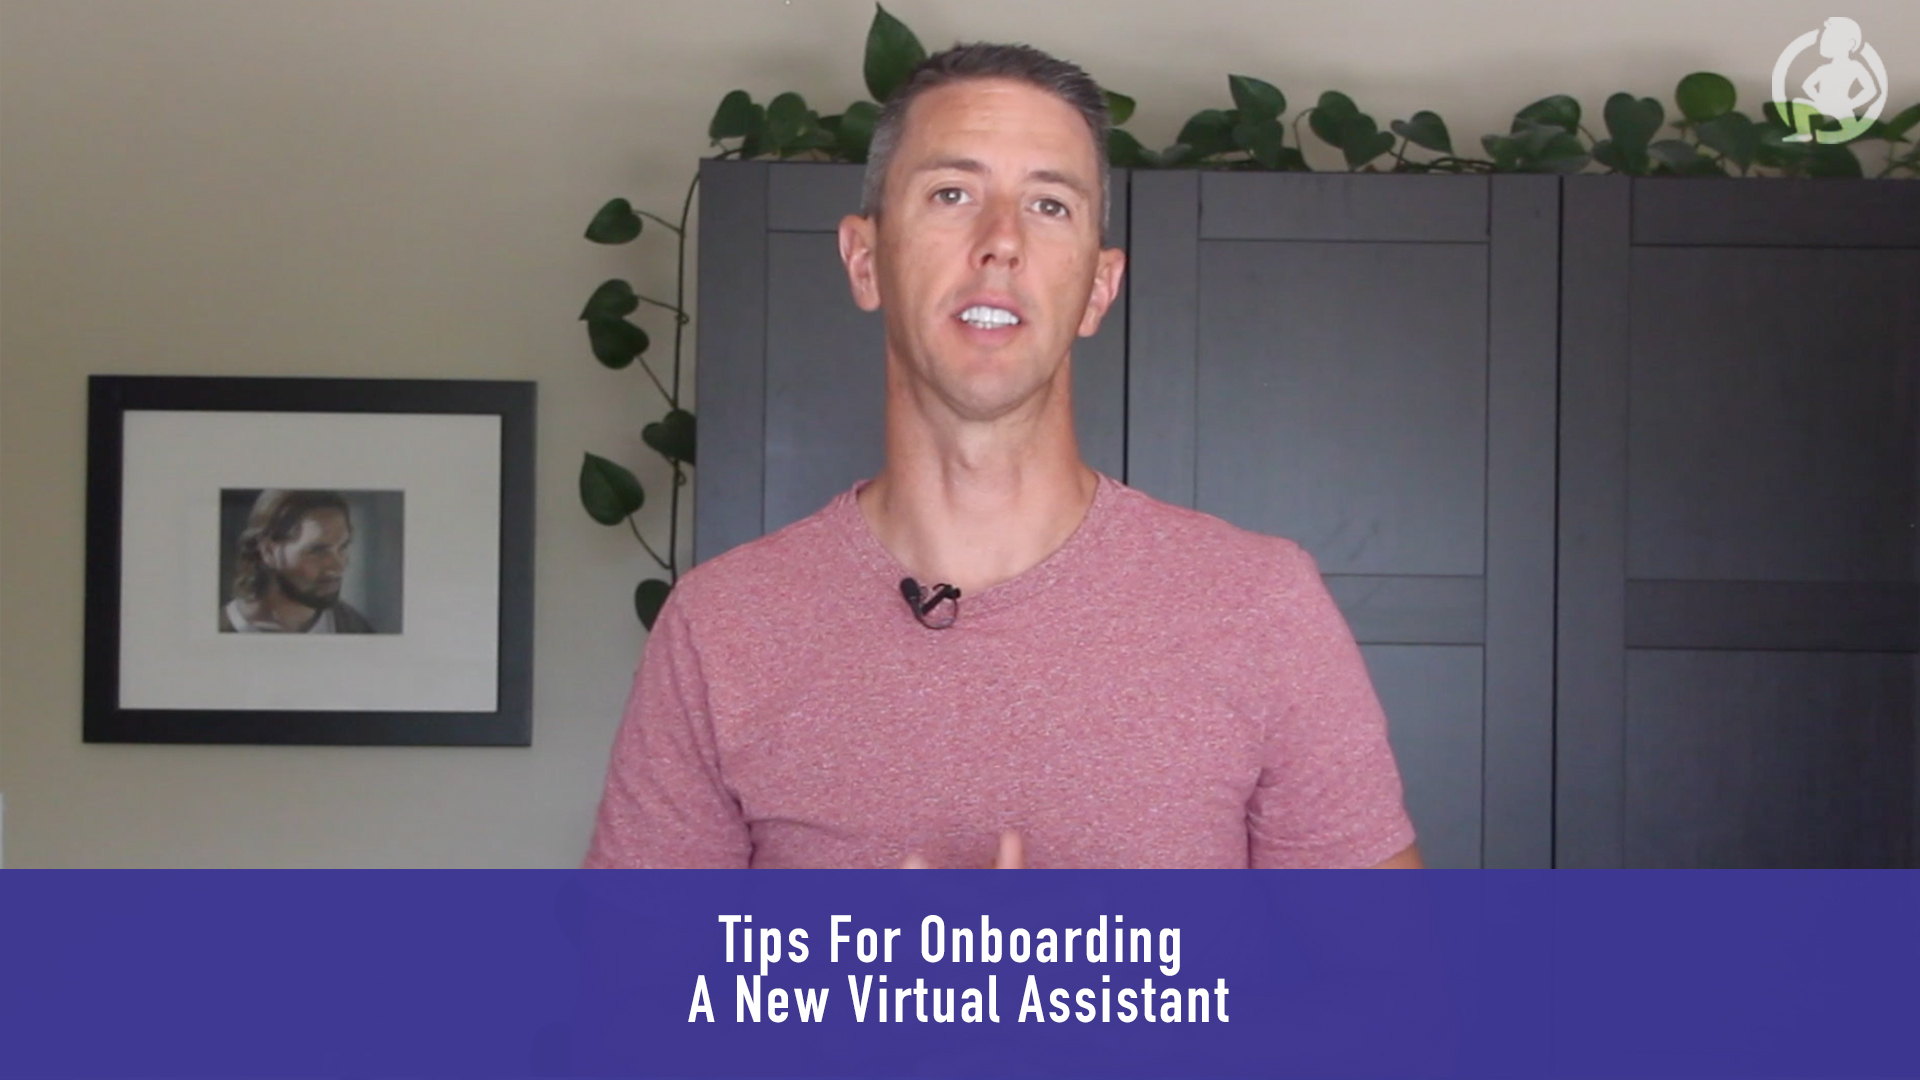 Tips for Onboarding a New Virtual Assistant – Practical Advice